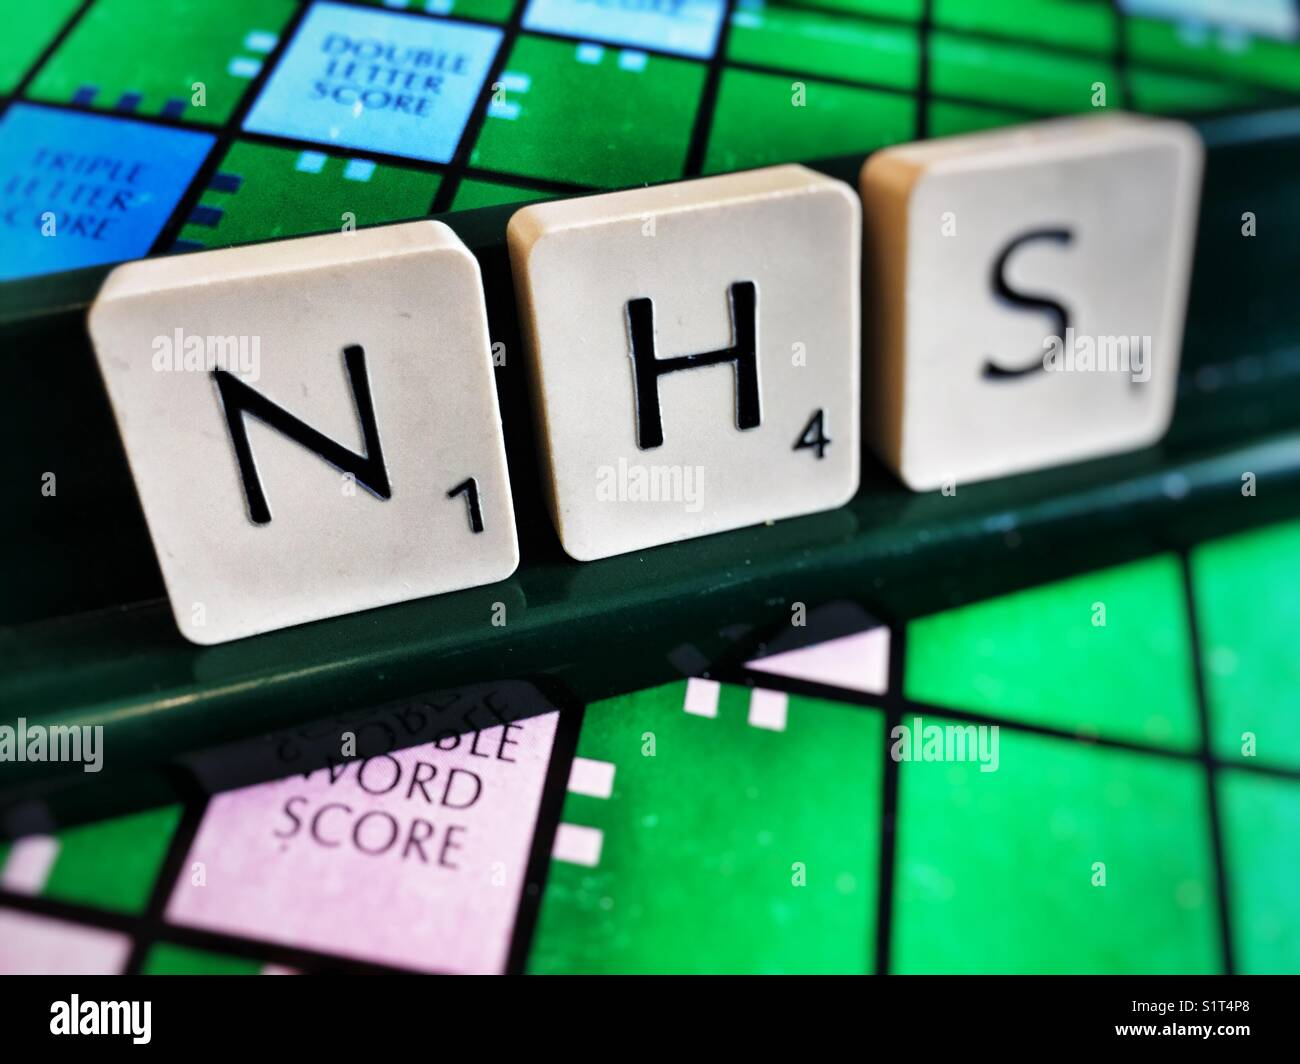 NHS (National Health Service) written with scrabble tiles Stock Photo